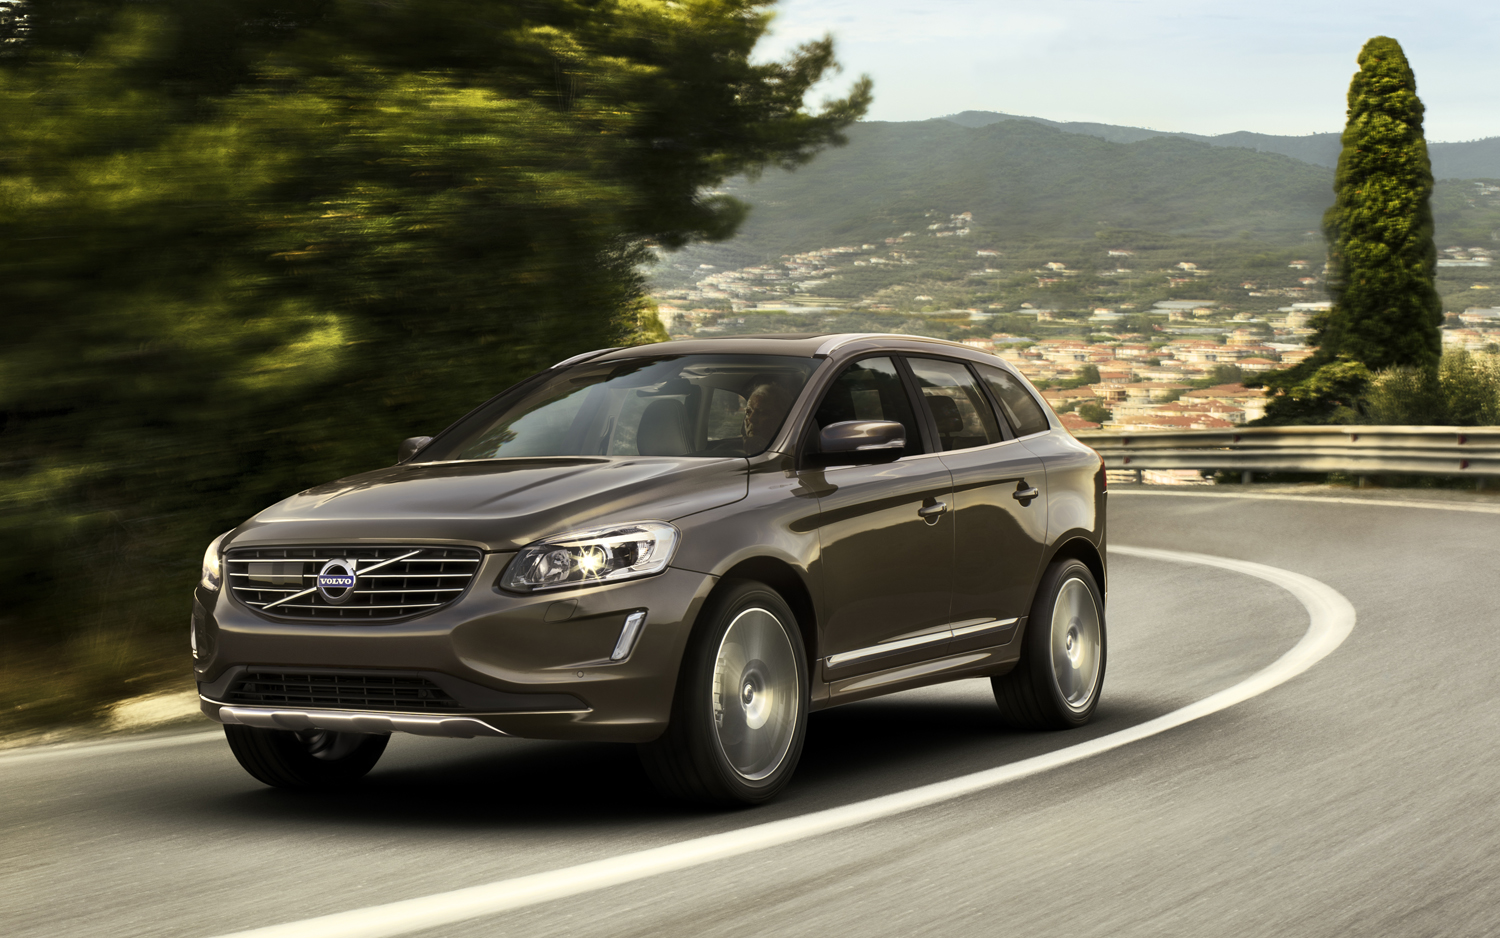 2014 Volvo Xc60 S60 To Offer Active High Beam Lighting Motor Trend